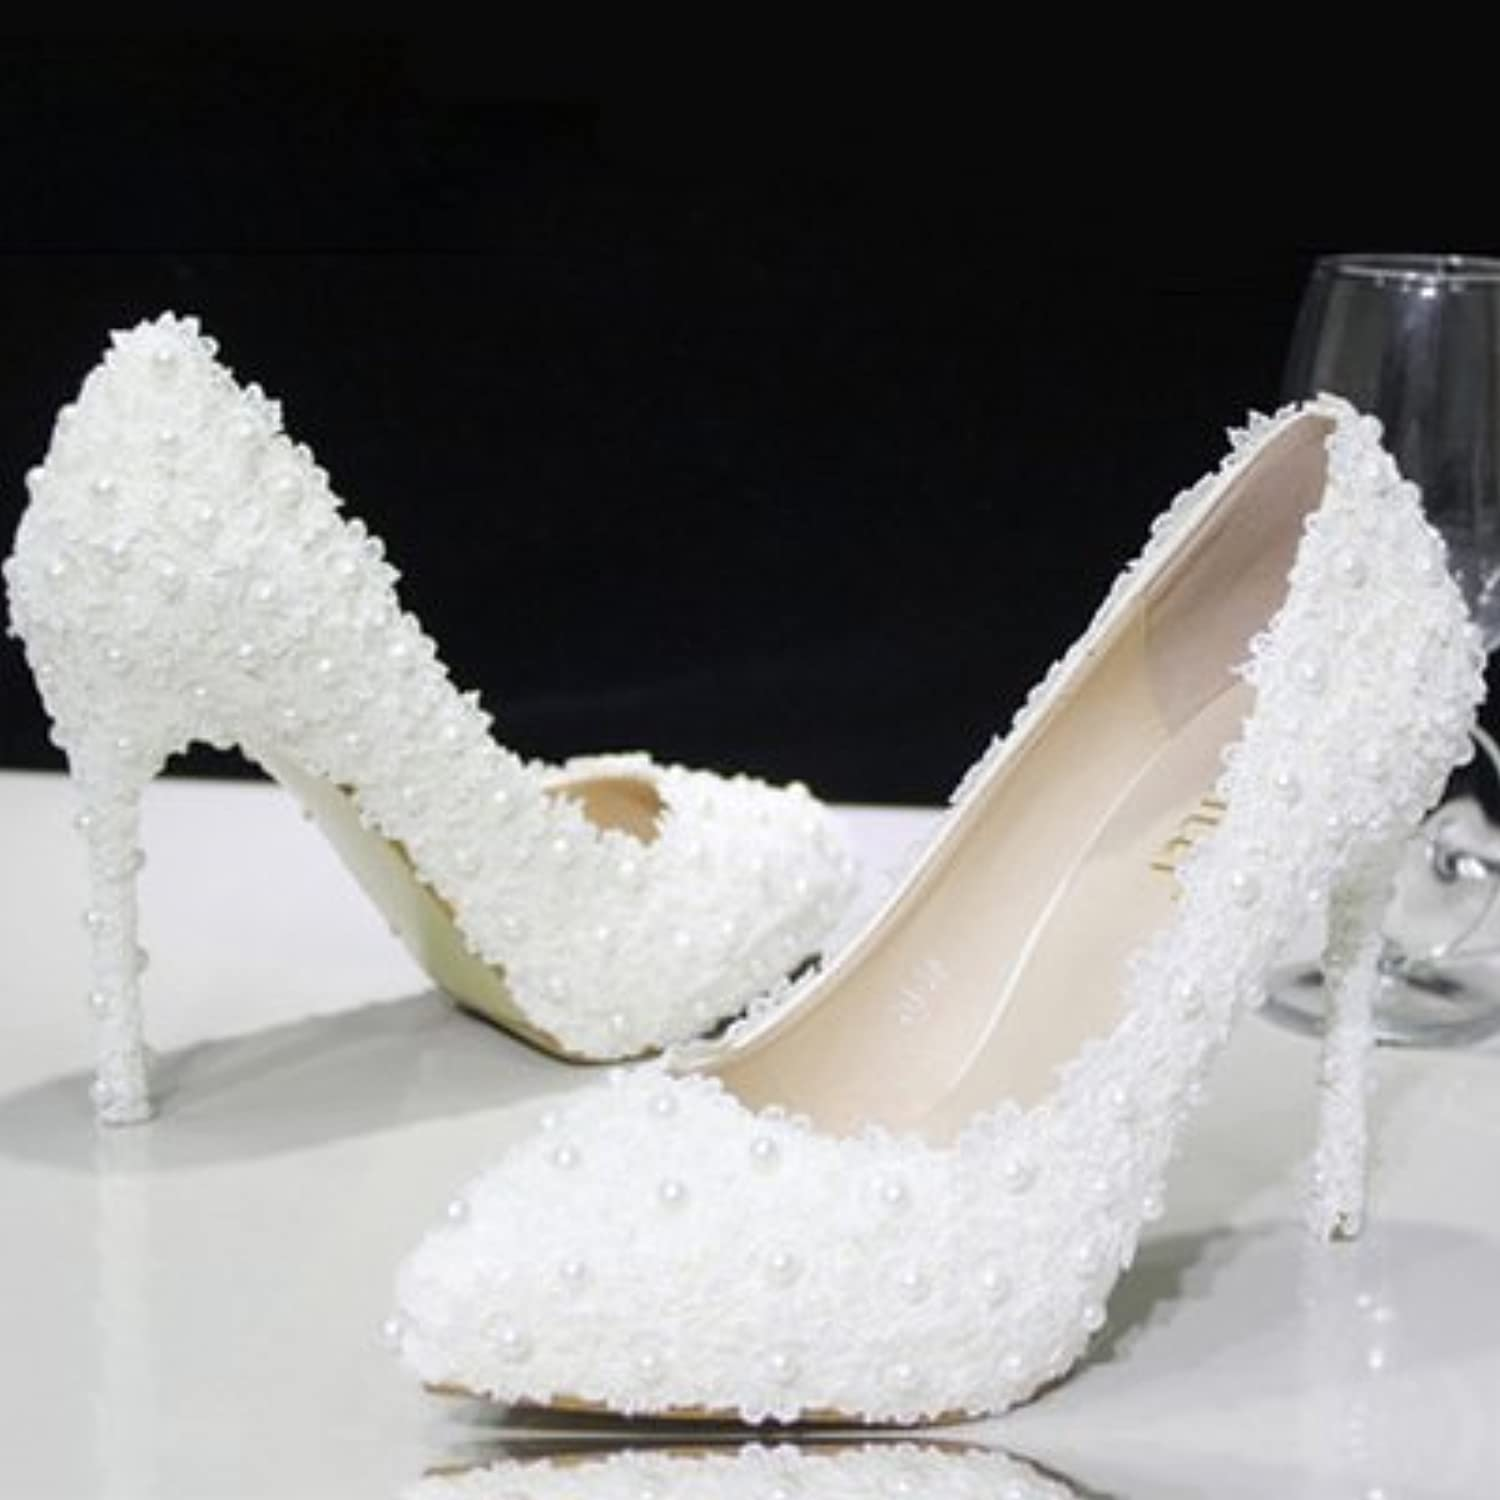 VIVIOO Prom Sandals scarpe Crystal scarpe Wedding scarpe scarpe scarpe Bridal scarpe Pearls Lace Flowers bianca Pumps High Heel,8 | Cheapest